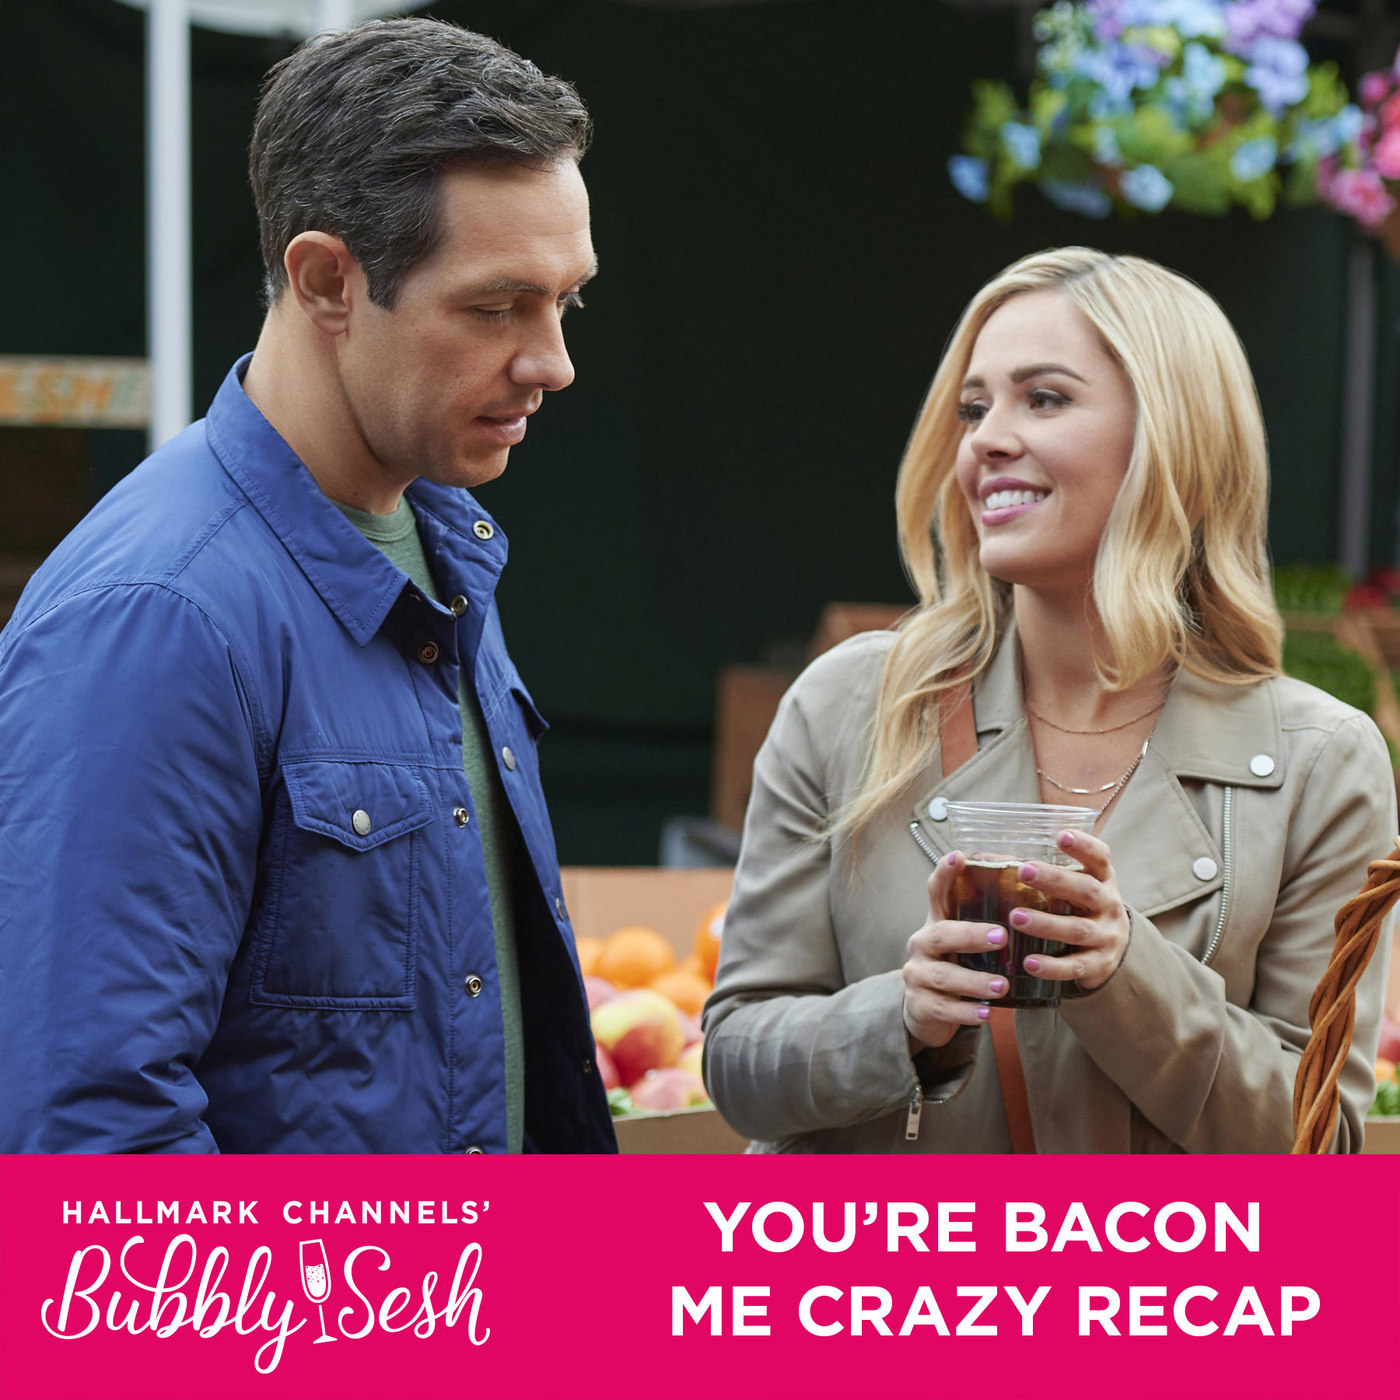 You're Bacon Me Crazy Recap